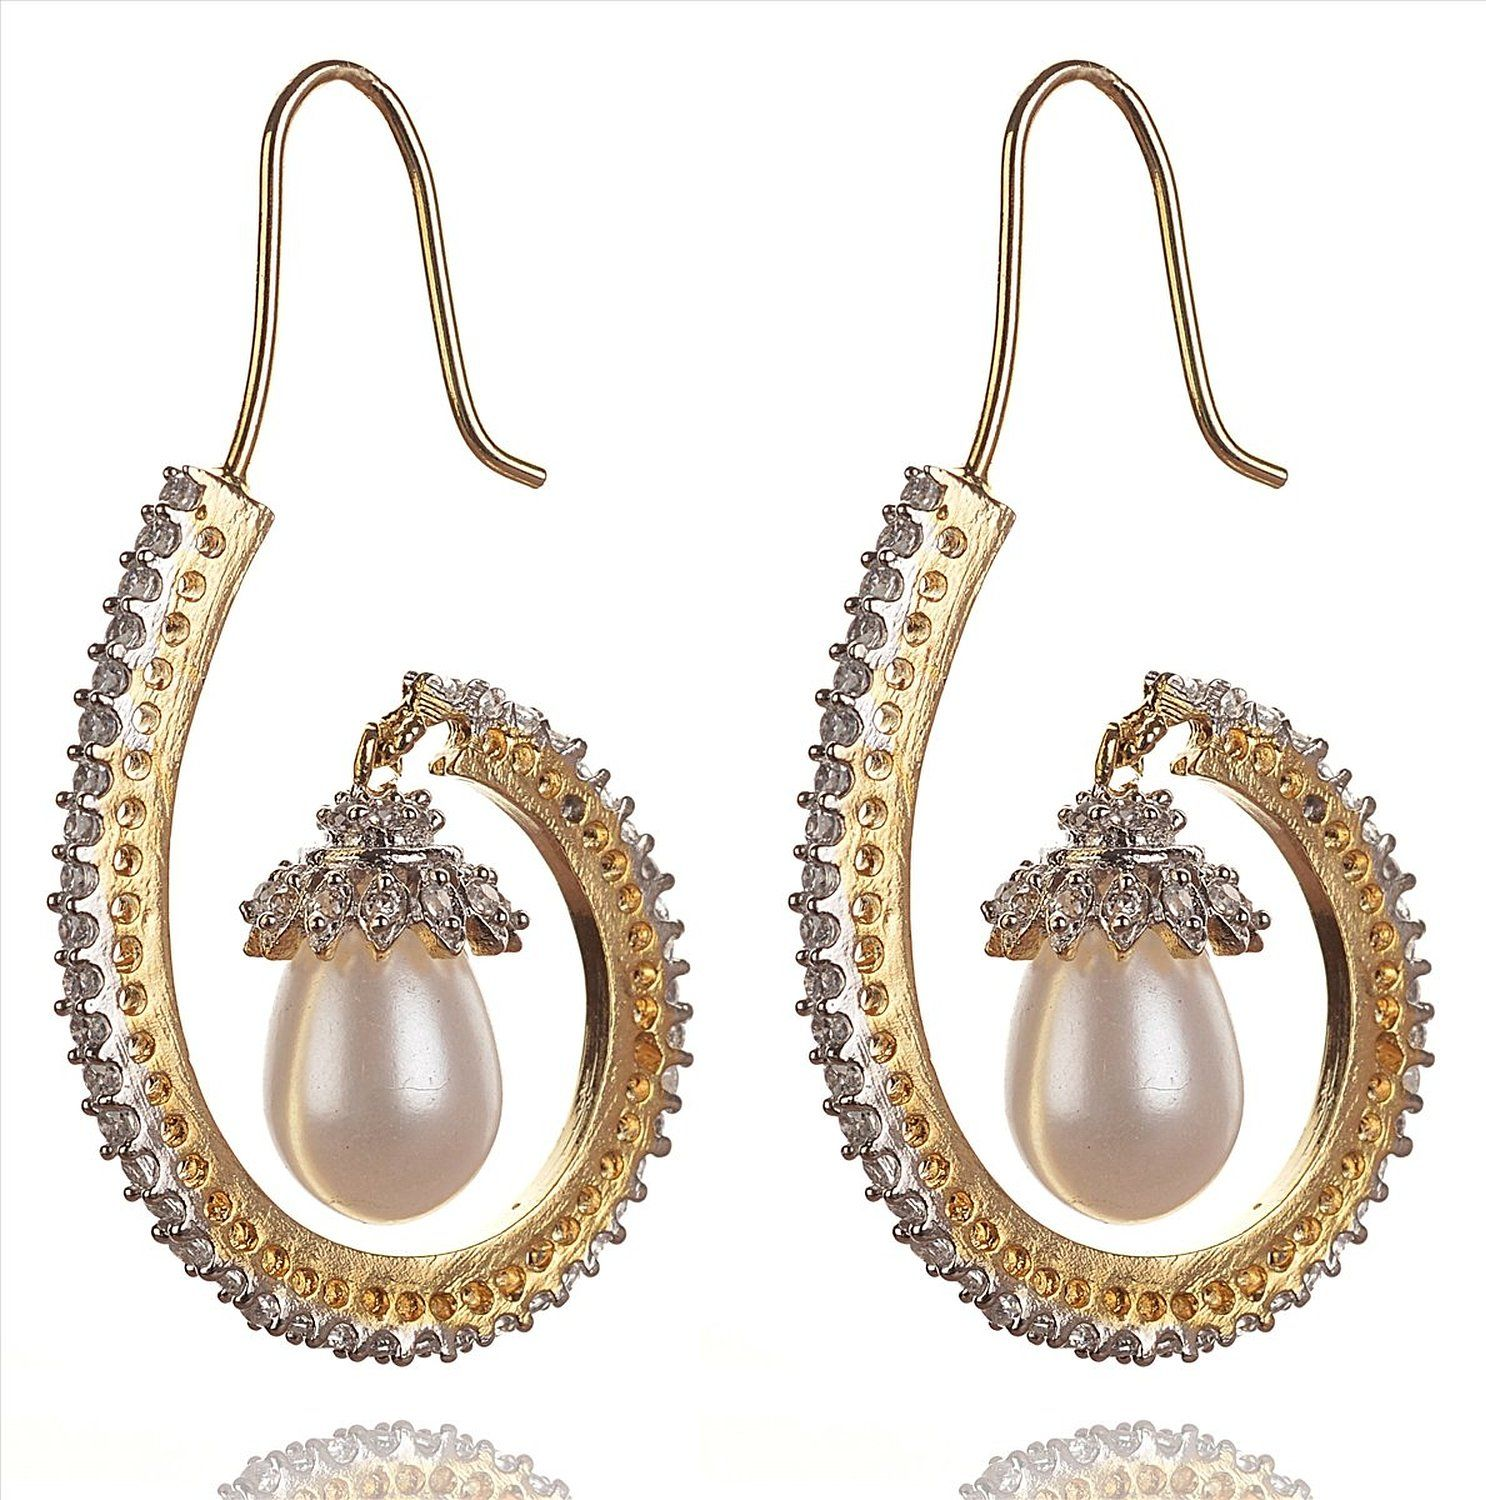 d store g jewellery c dolce fashion on earrings online gold available clip uk jewelry buy to hoop flower gabbana women